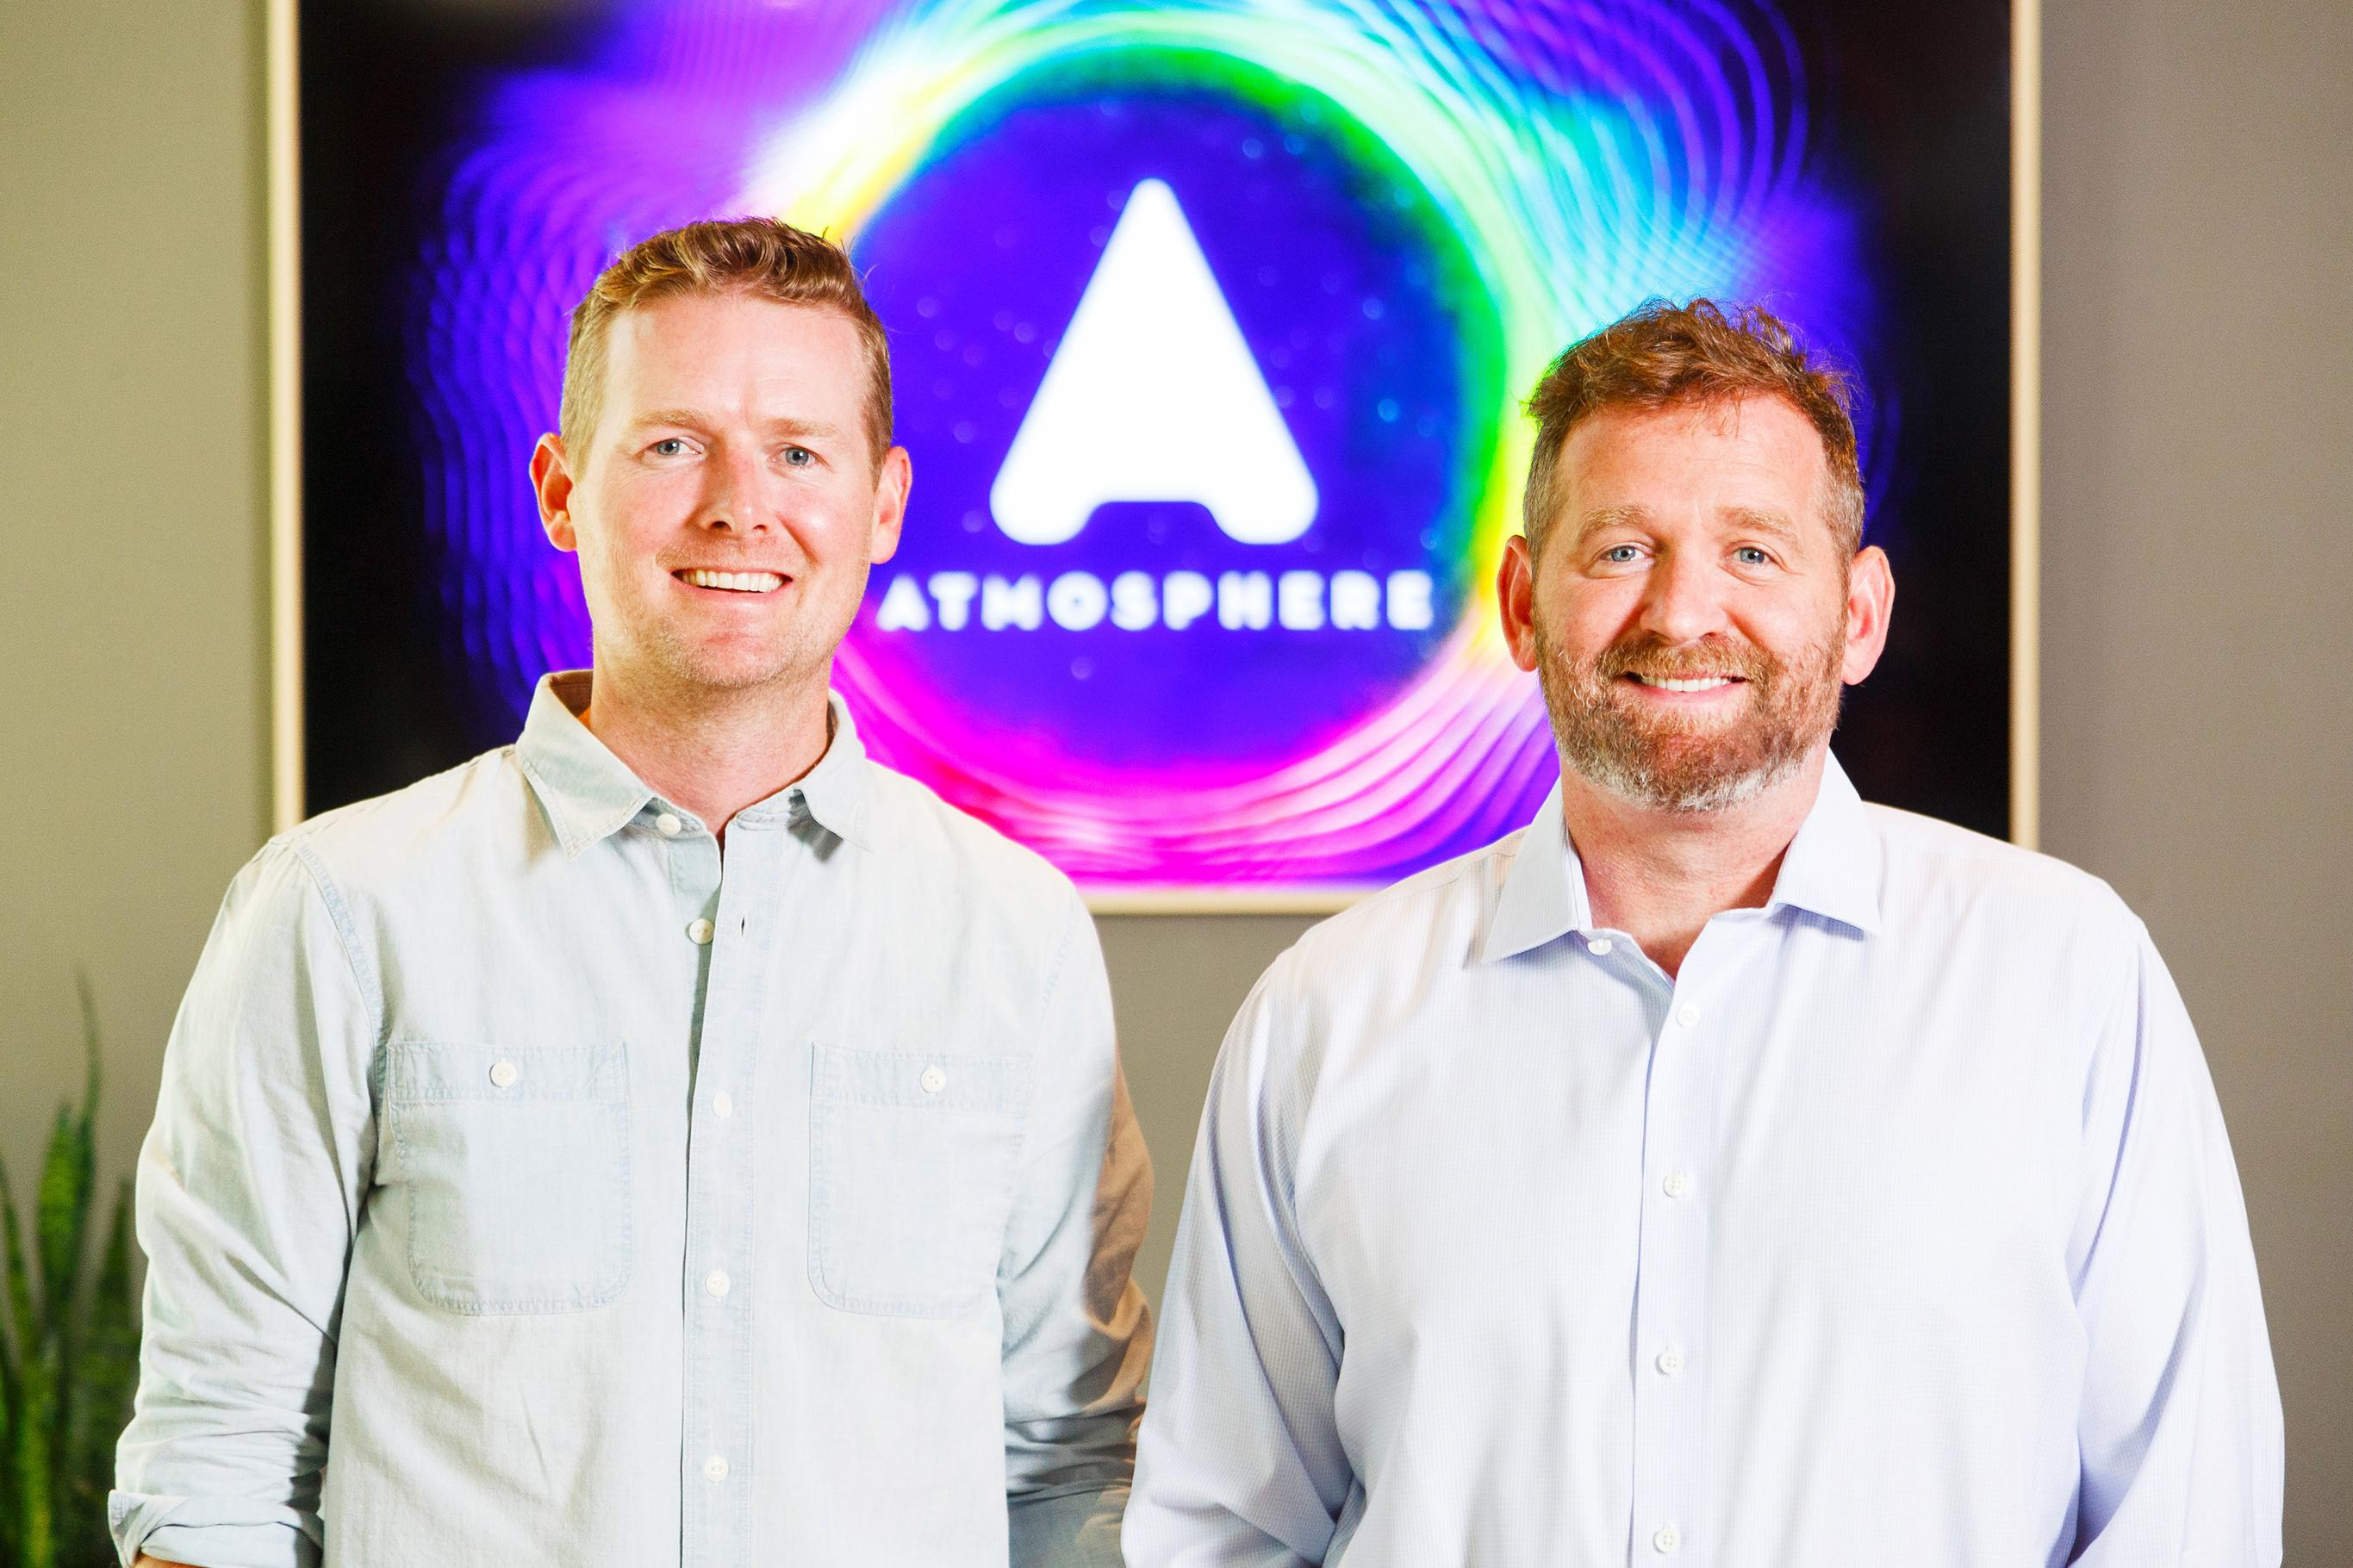 Atmosphere TV, founded by Leo and John Resig, has raised $25 million.